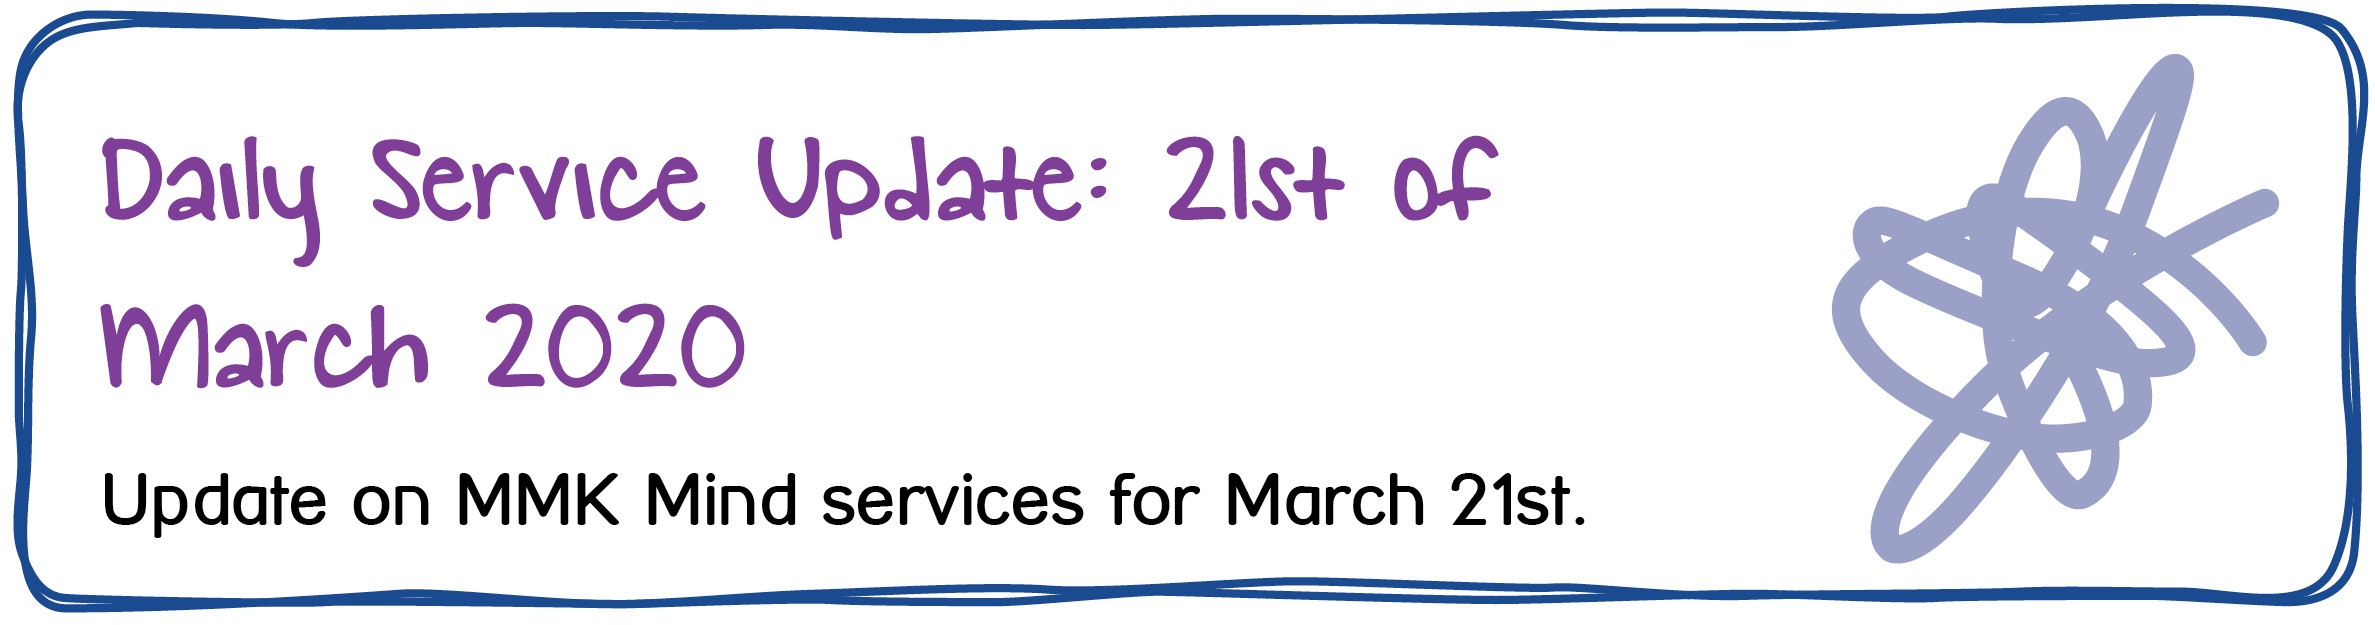 Daily Service Update: 21st of March 2020